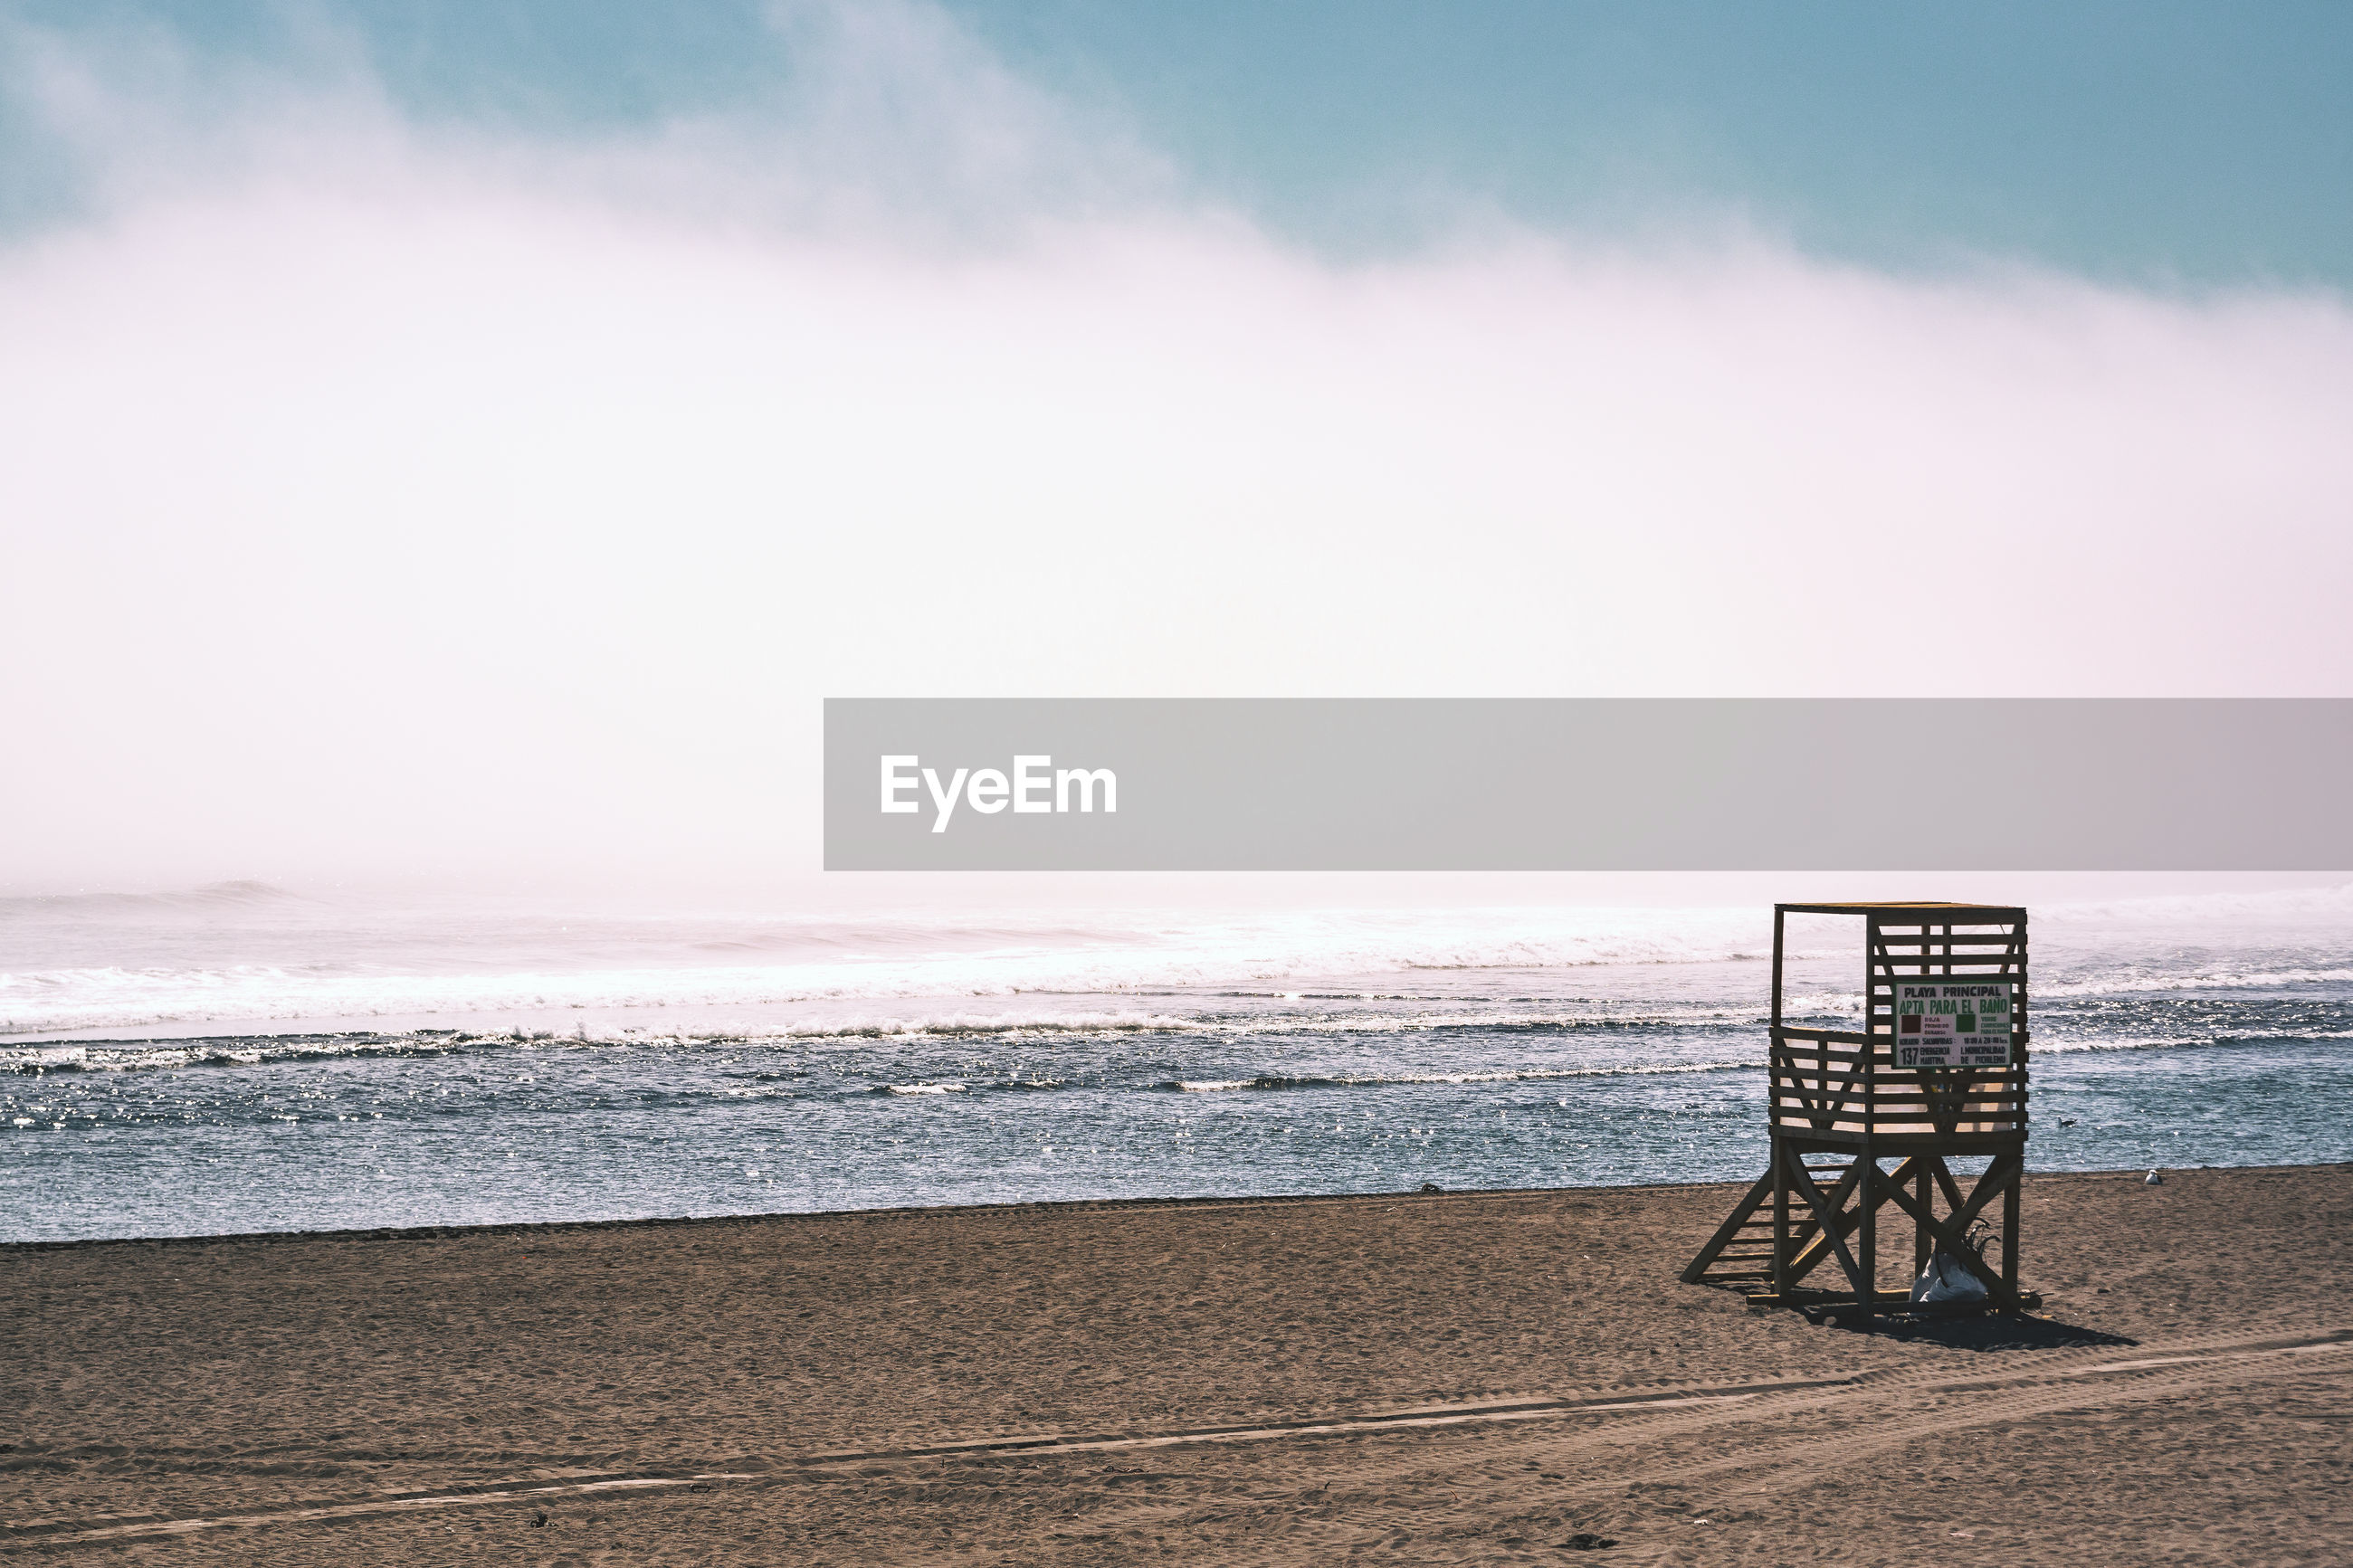 water, sky, sea, beach, land, horizon over water, scenics - nature, beauty in nature, horizon, nature, safety, tranquility, tranquil scene, no people, lifeguard hut, protection, outdoors, security, man made structure